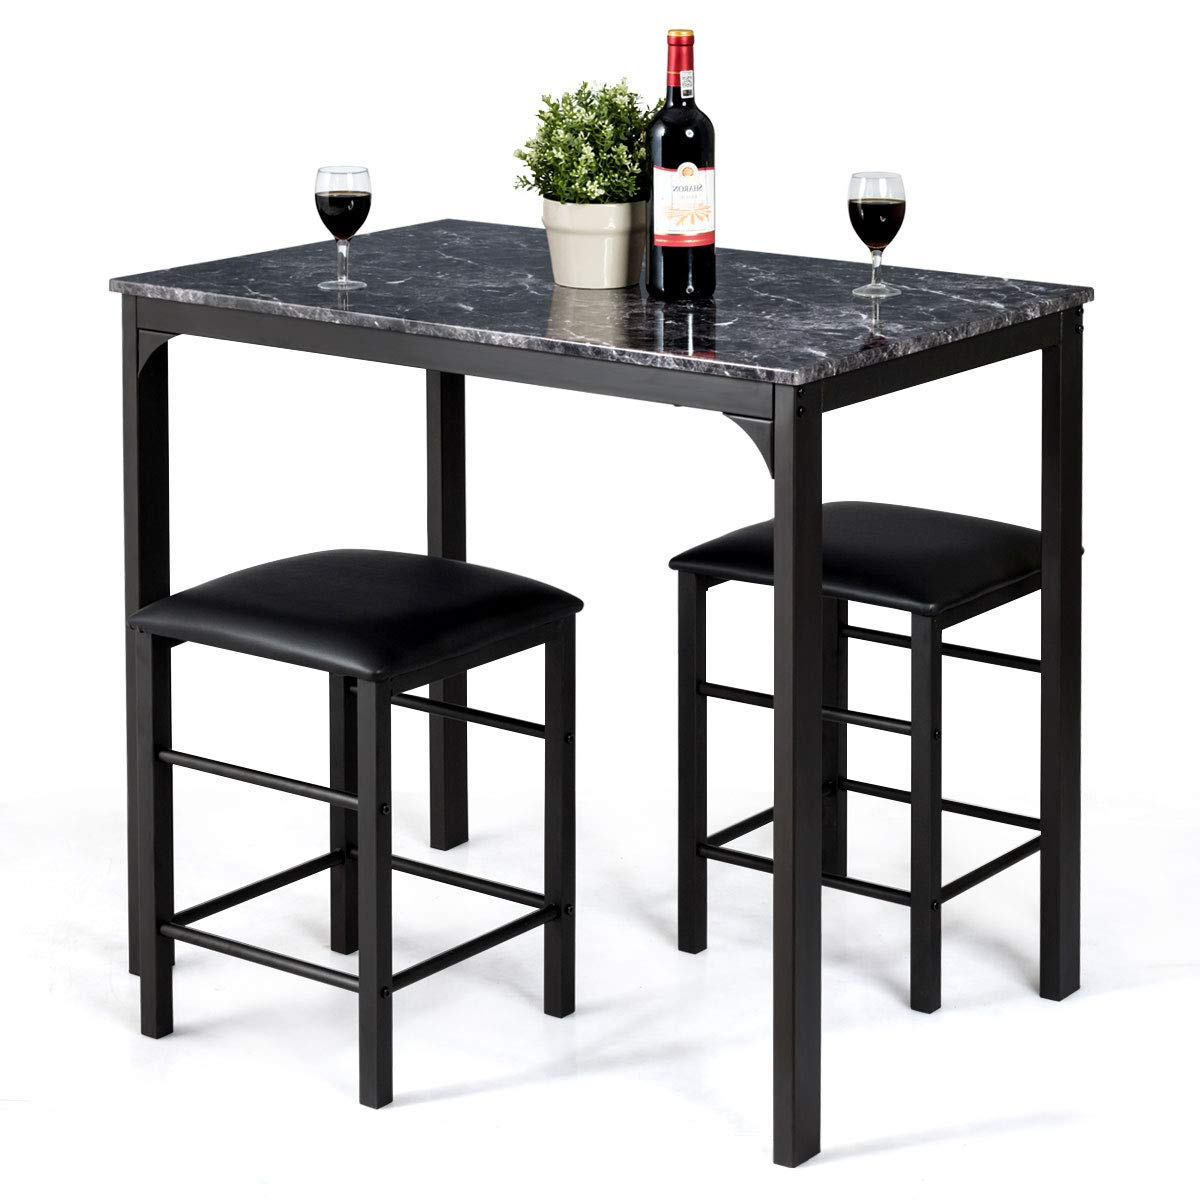 3 Pieces Dining Tables And Chair Set Intended For Recent Giantex 3 Pcs Dining Table And Chairs Set With Faux Marble Tabletop 2  Chairs Contemporary Dining Table Set For Home Or Hotel Dining Room, Kitchen  Or (View 8 of 30)